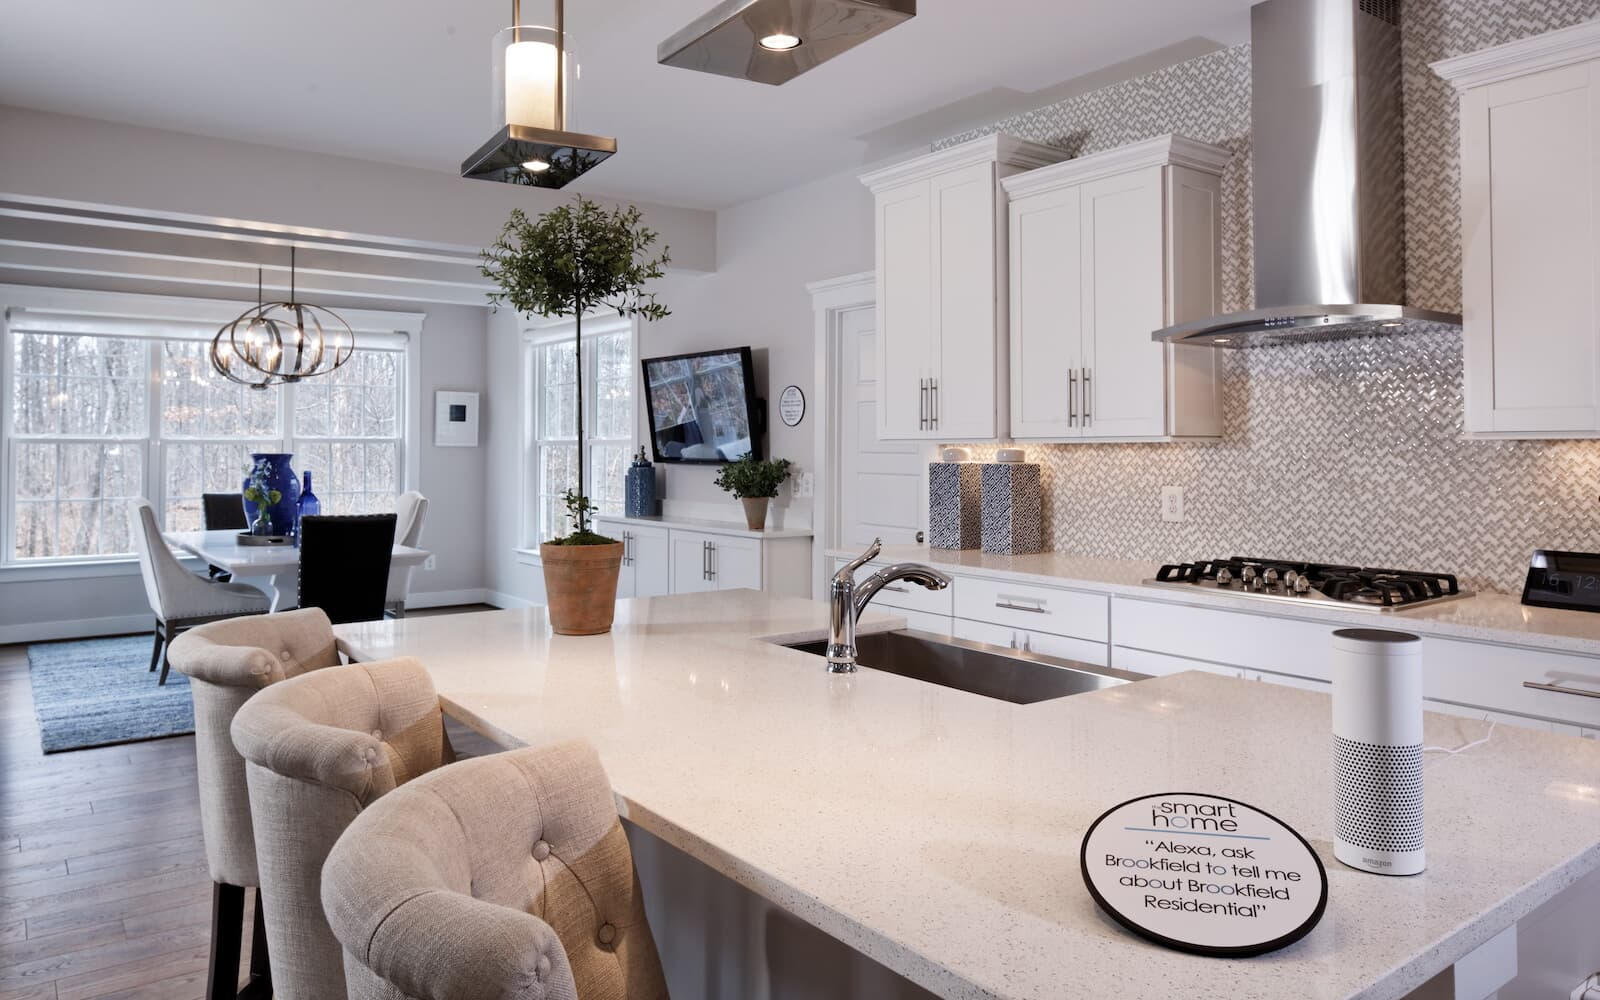 Kensington-kitchen-island-single-family-home-bristow-va-avendale-brookfield-residential